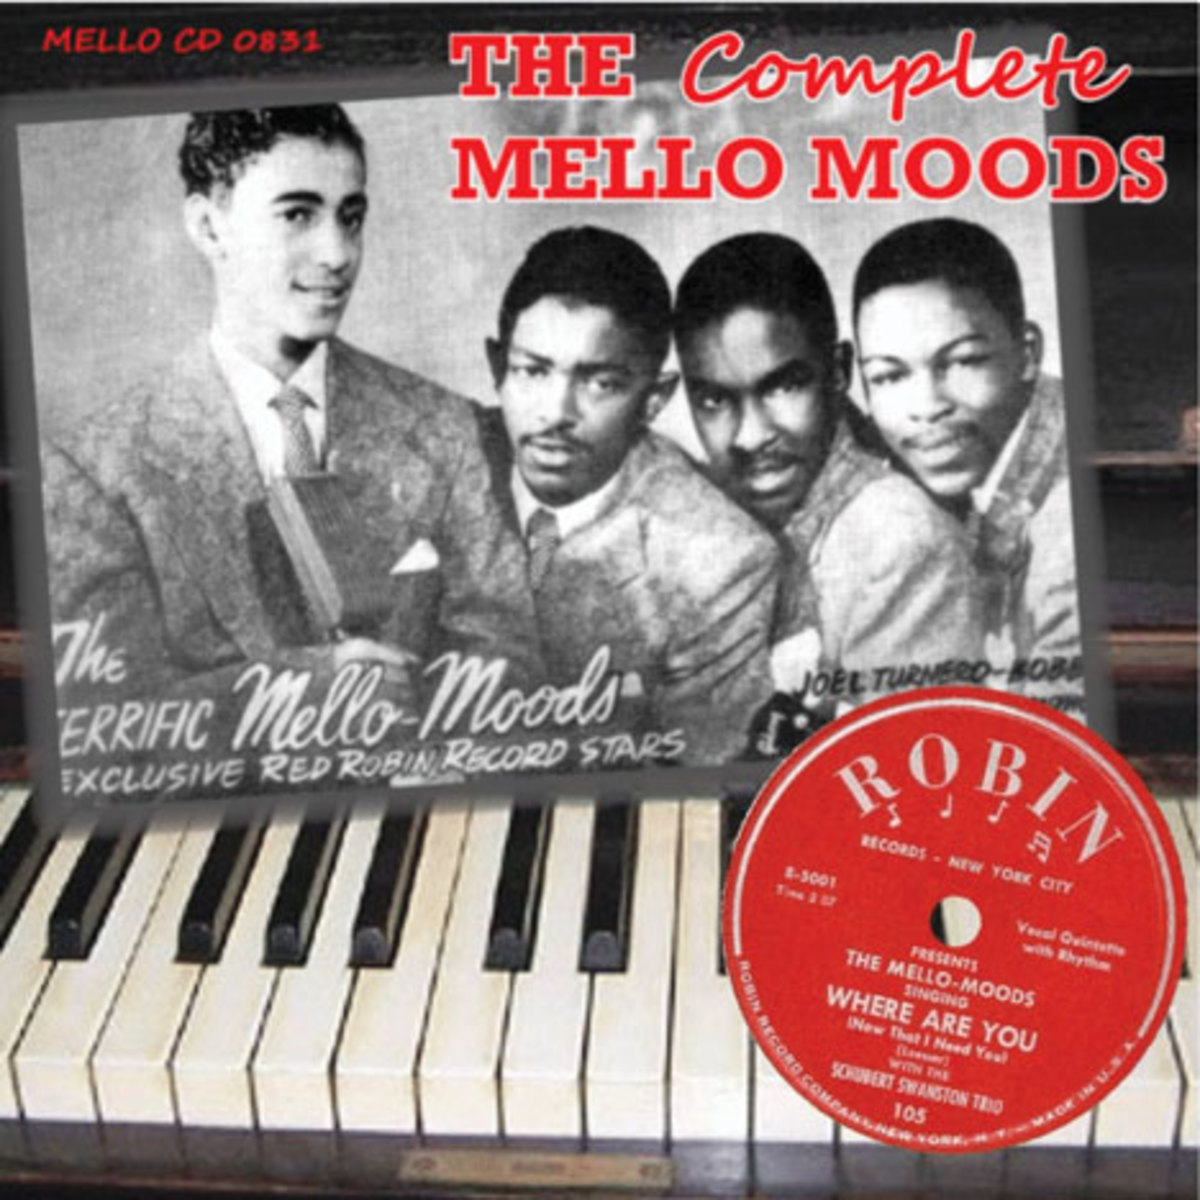 The cover of The Mello-Moods' CD release features a previously unpublished 1952 photo of the group: (from left) Raymond Wooten, Jim Bethea, Bobby Williams, and Monte Owens.